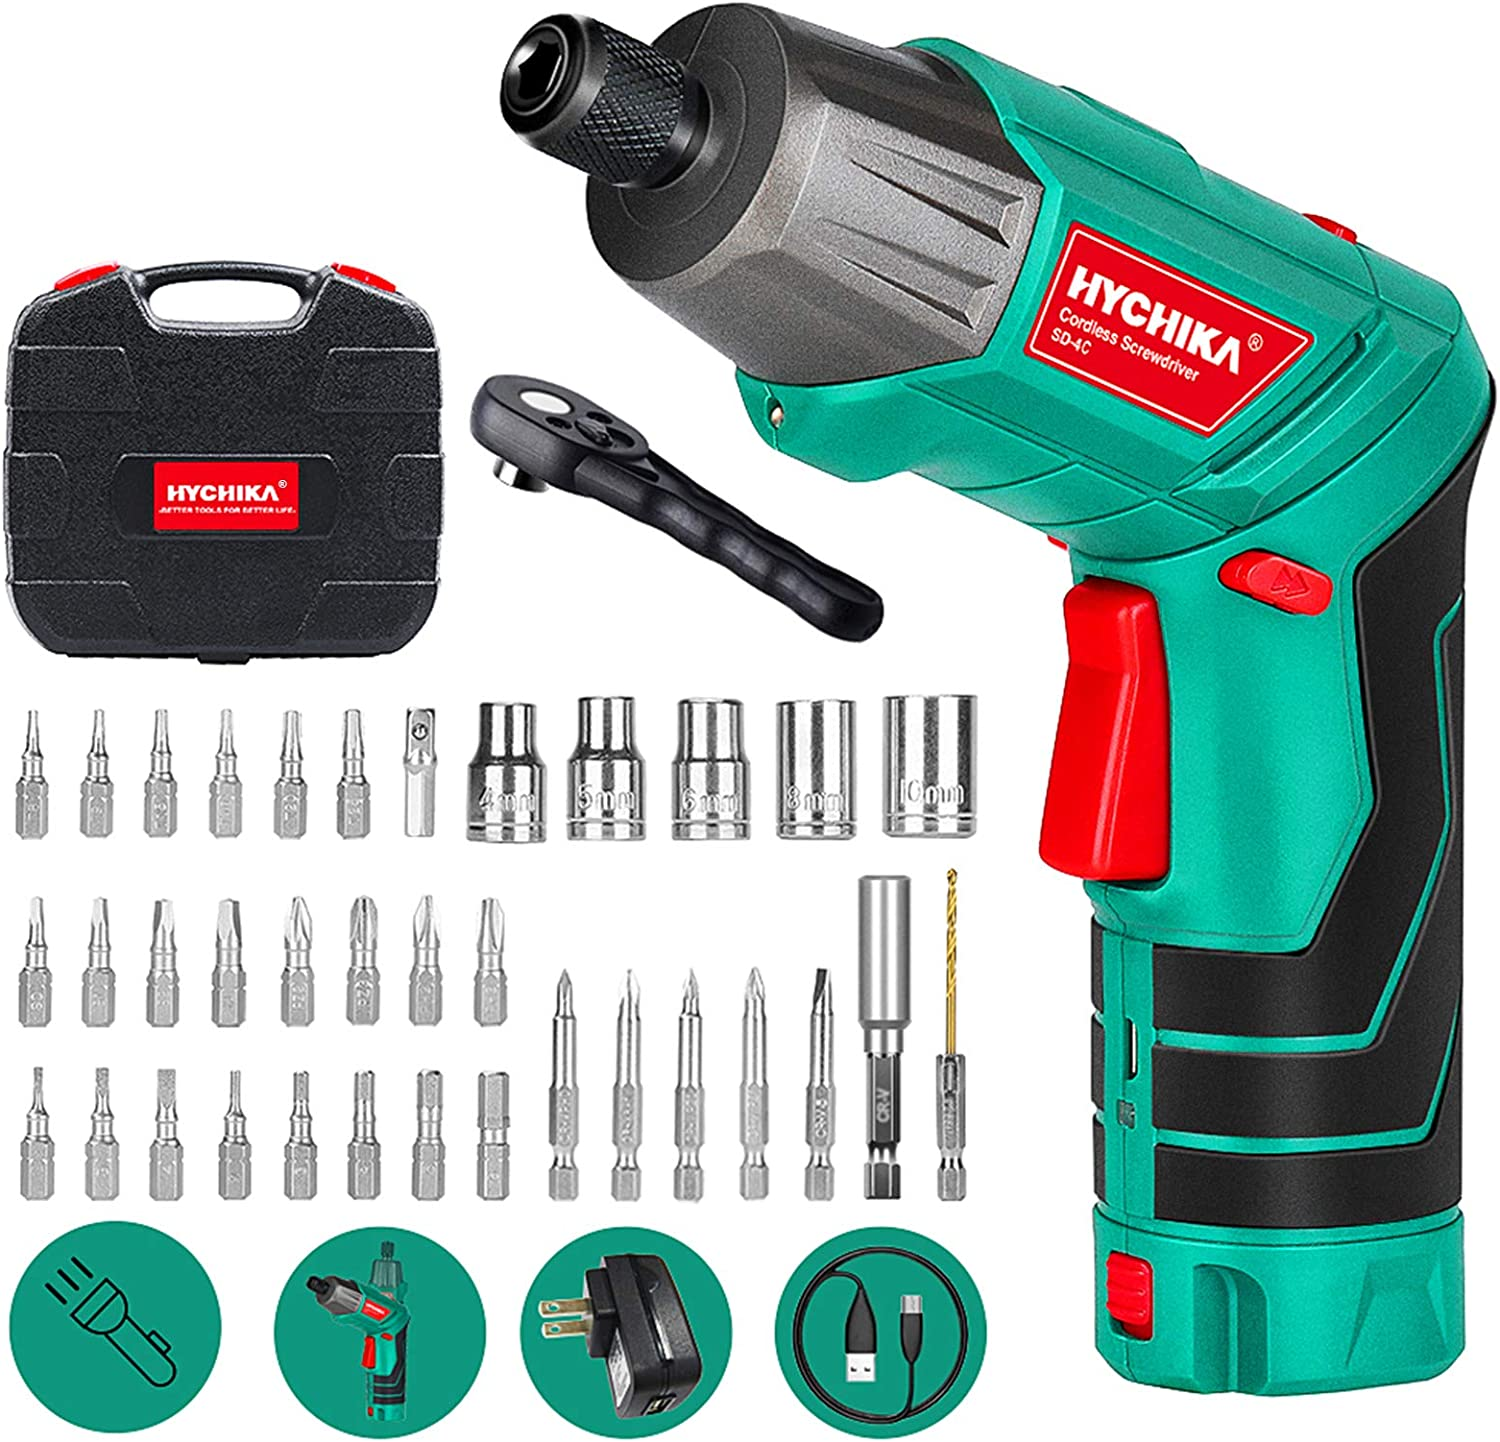 HYCHIKA Cordless Screwdriver With Front LED & 36pcs Accessories, Carrying Box